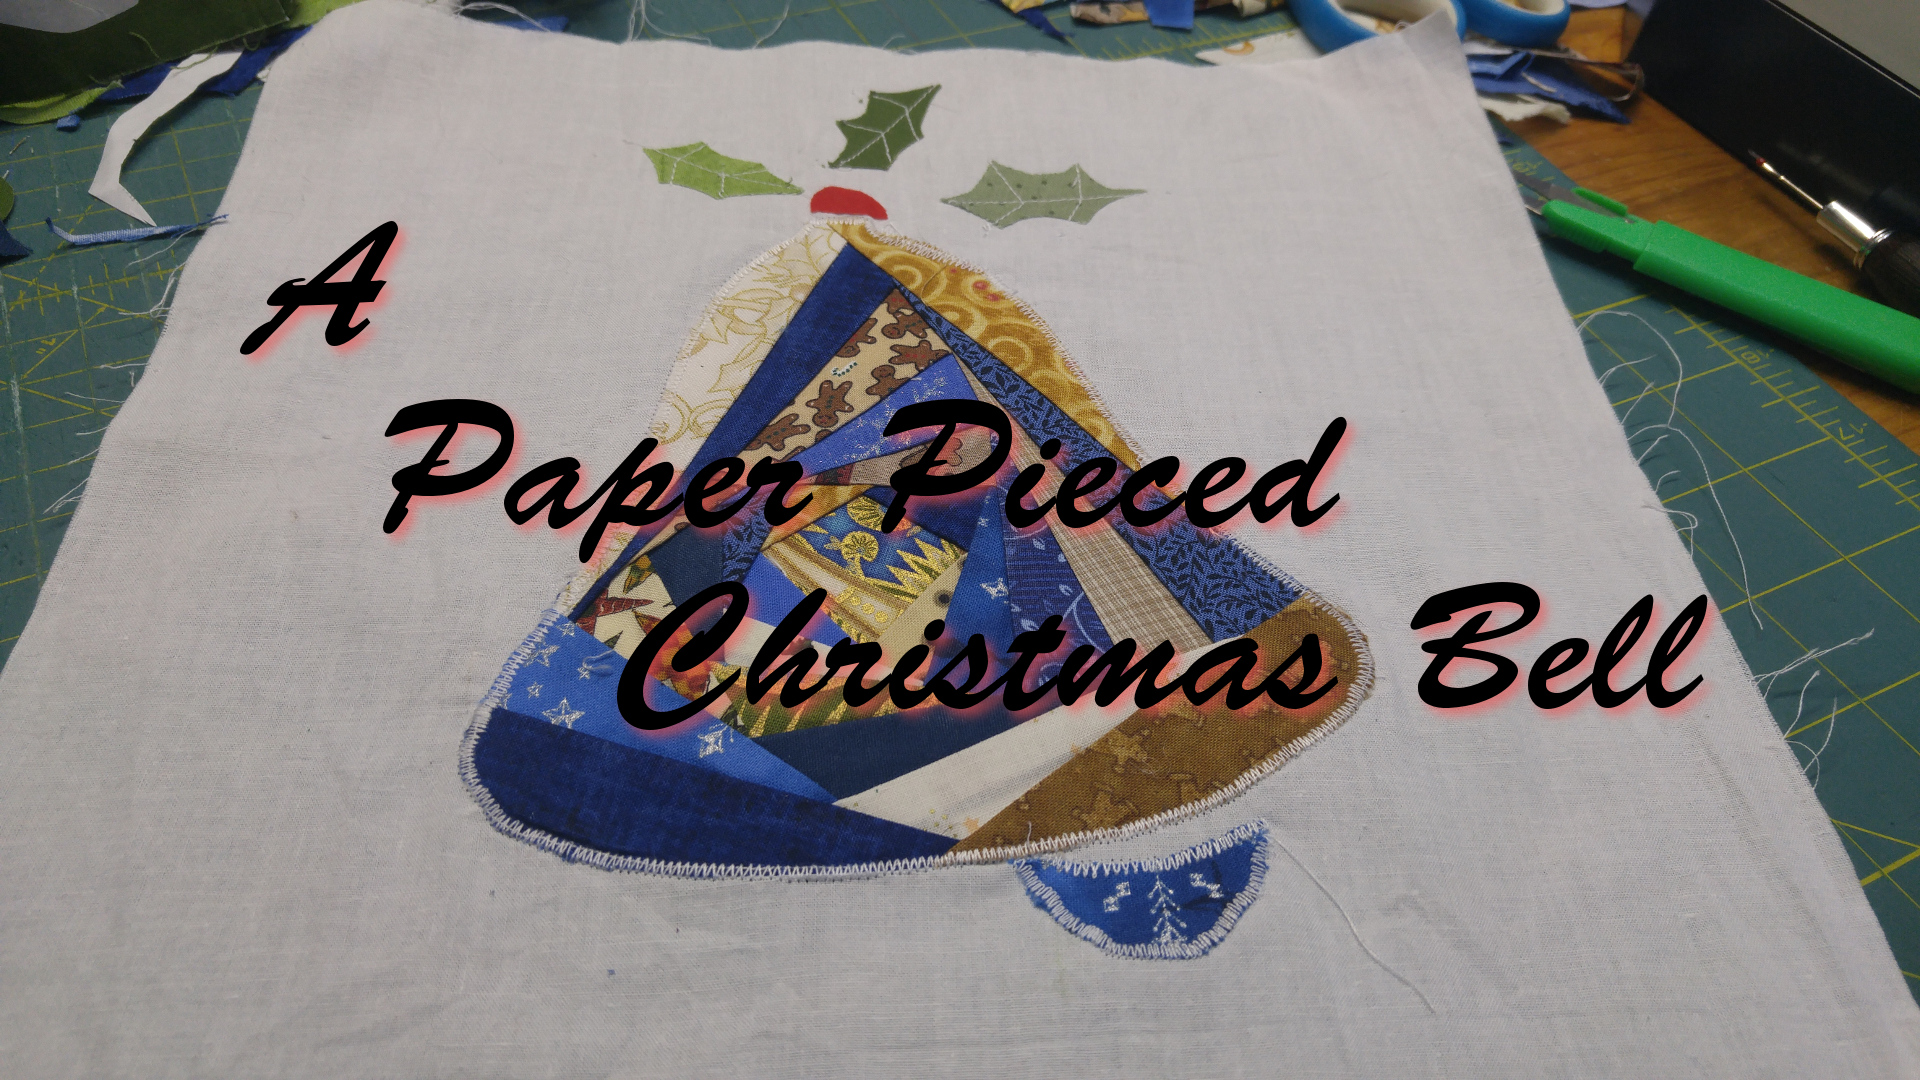 Paper Pieced Christmas Bell